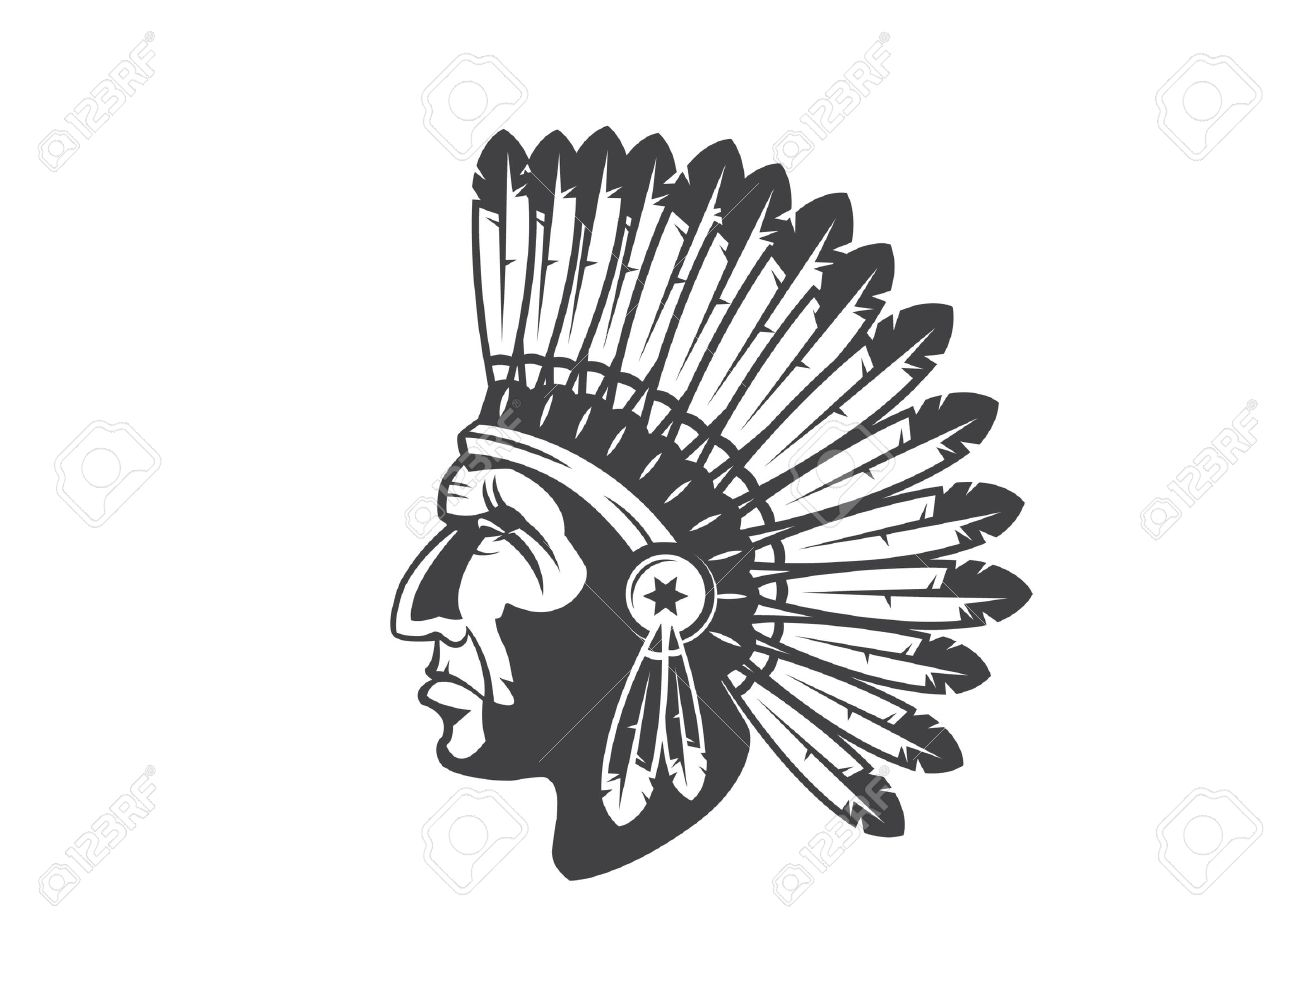 hight resolution of native american indian chief headdress indian chief mascot indian tribal headdress indian headdress stock